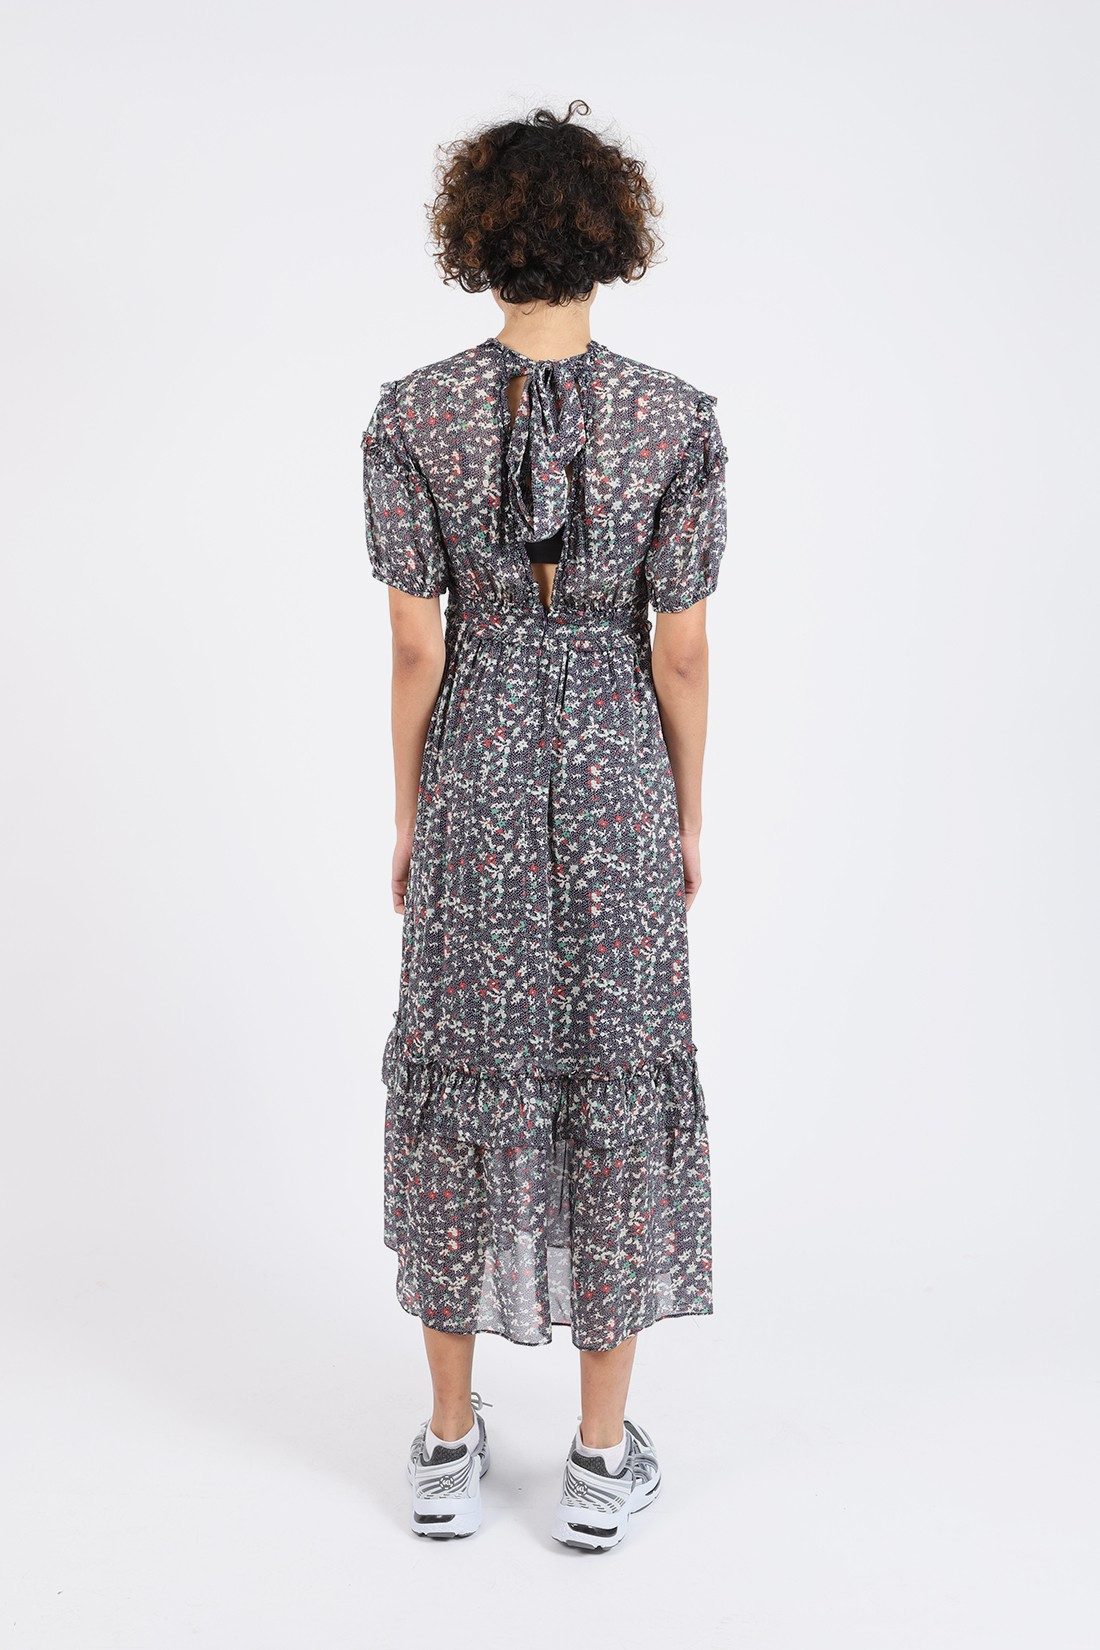 BELLEROSE FOR WOMAN / Robe horace Display a